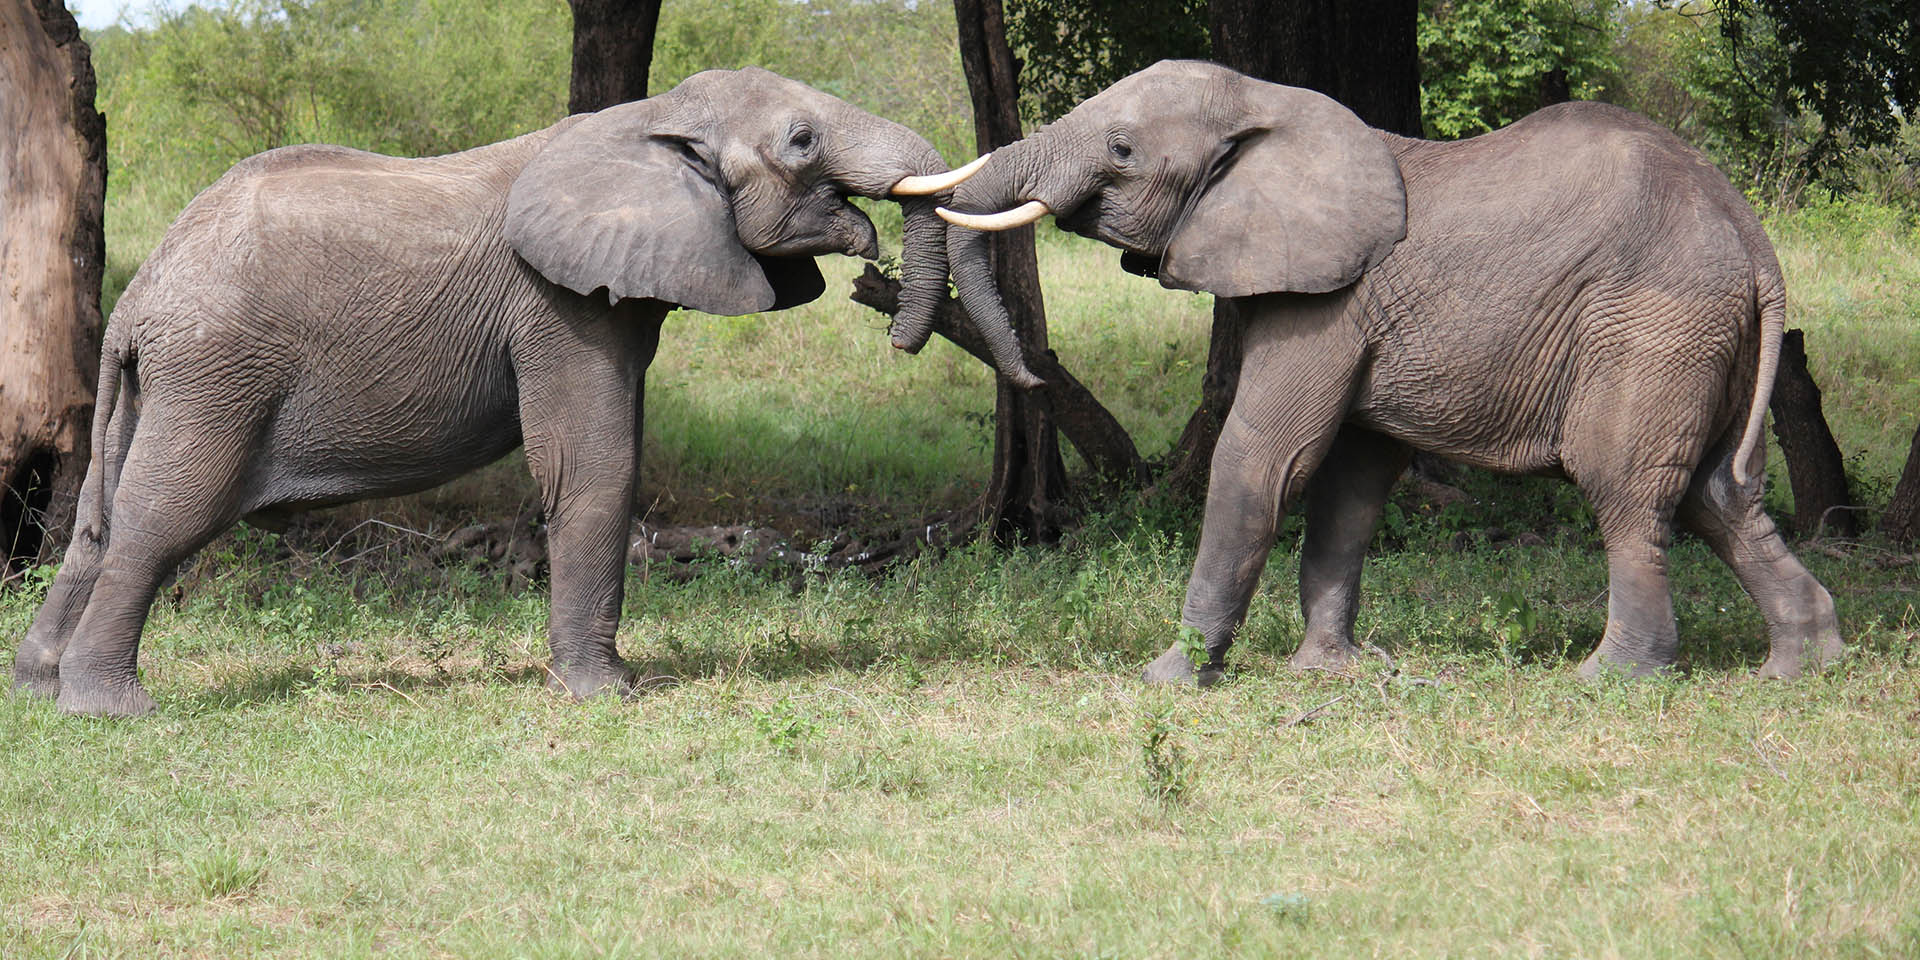 south luangwa national park zambia-national-parks-malawian-style-malawi-adventures-experiences-specialist-tour-operator-elephants-landscape